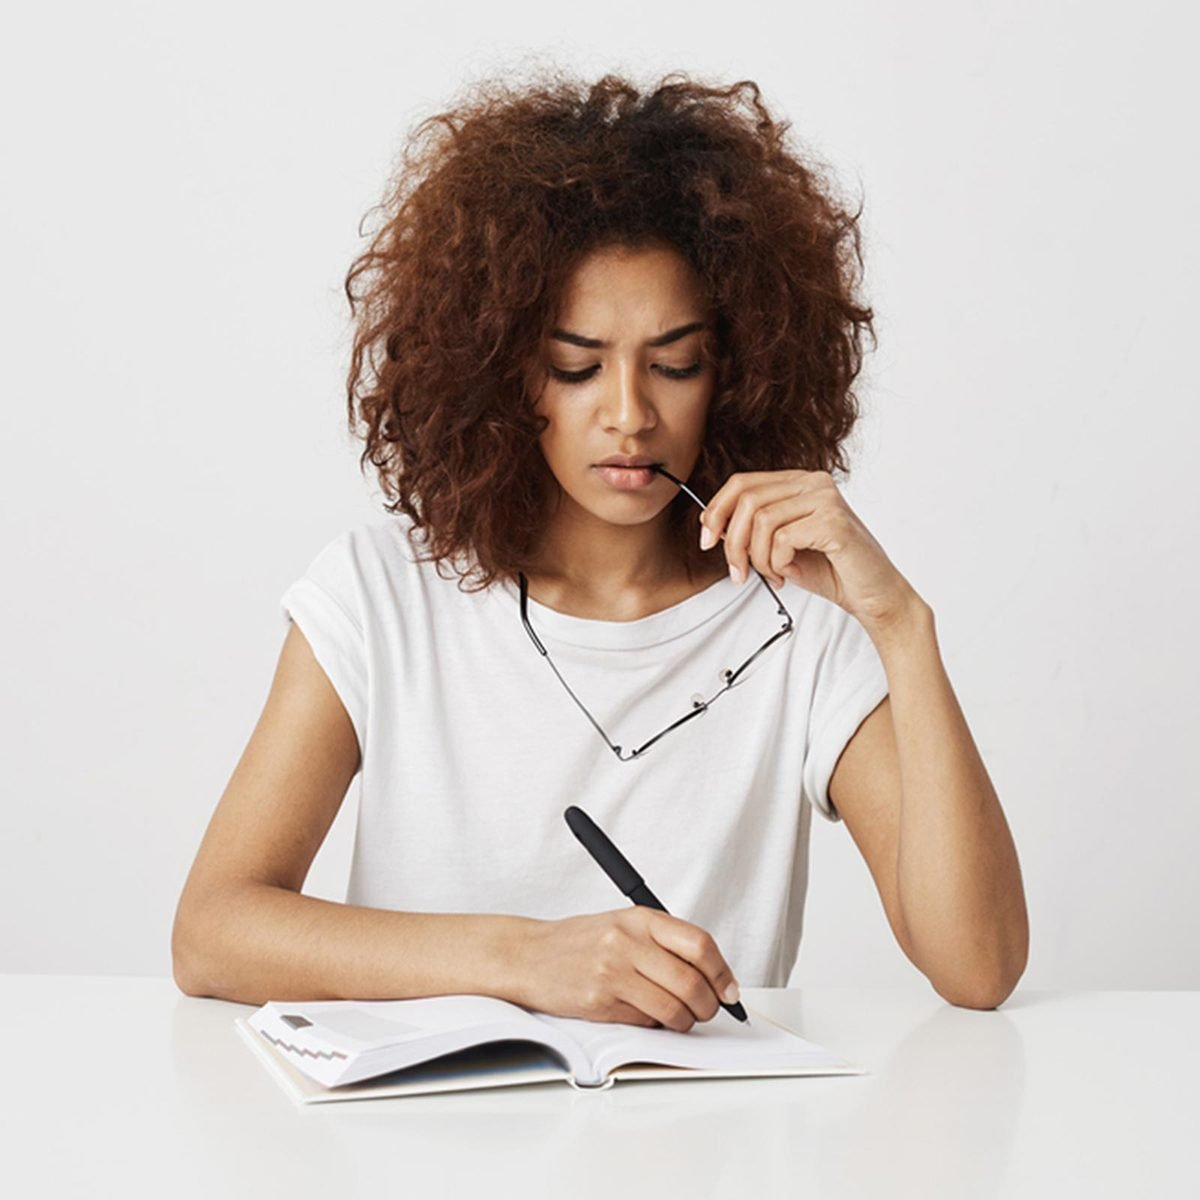 Woman thinking and taking notes